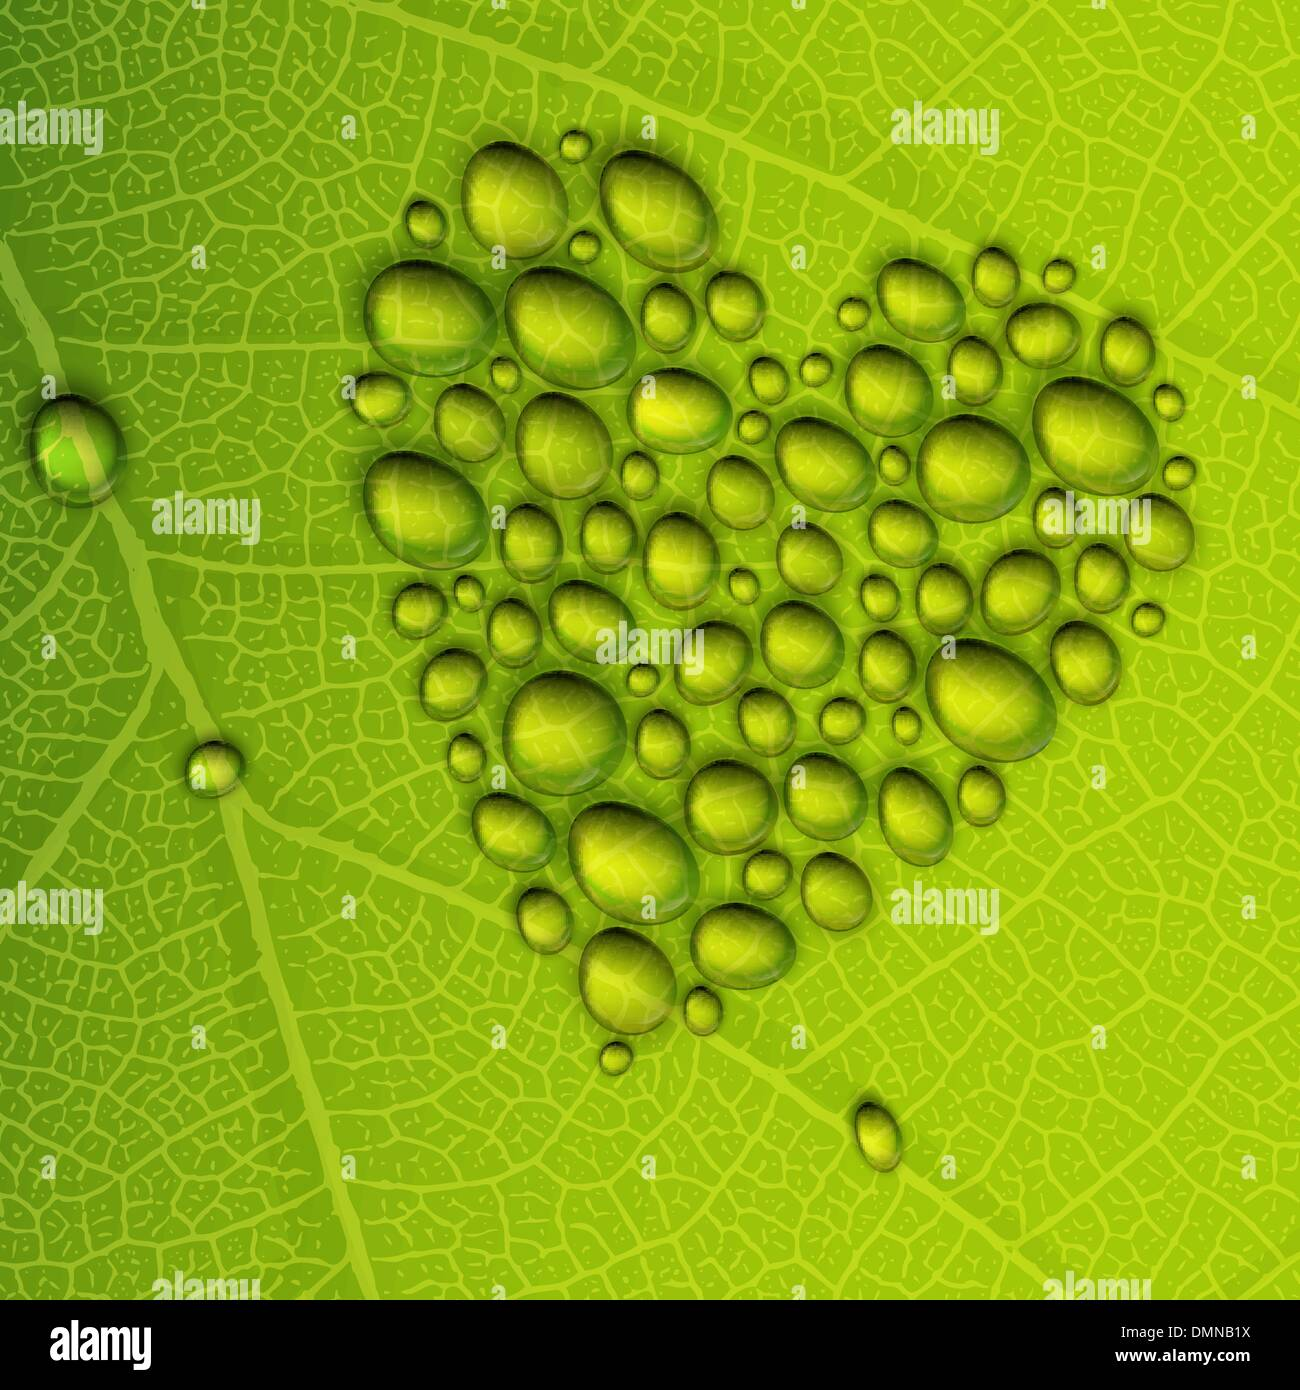 Heart shape dew drops on green leaf. Vector illustration, EPS10 - Stock Image